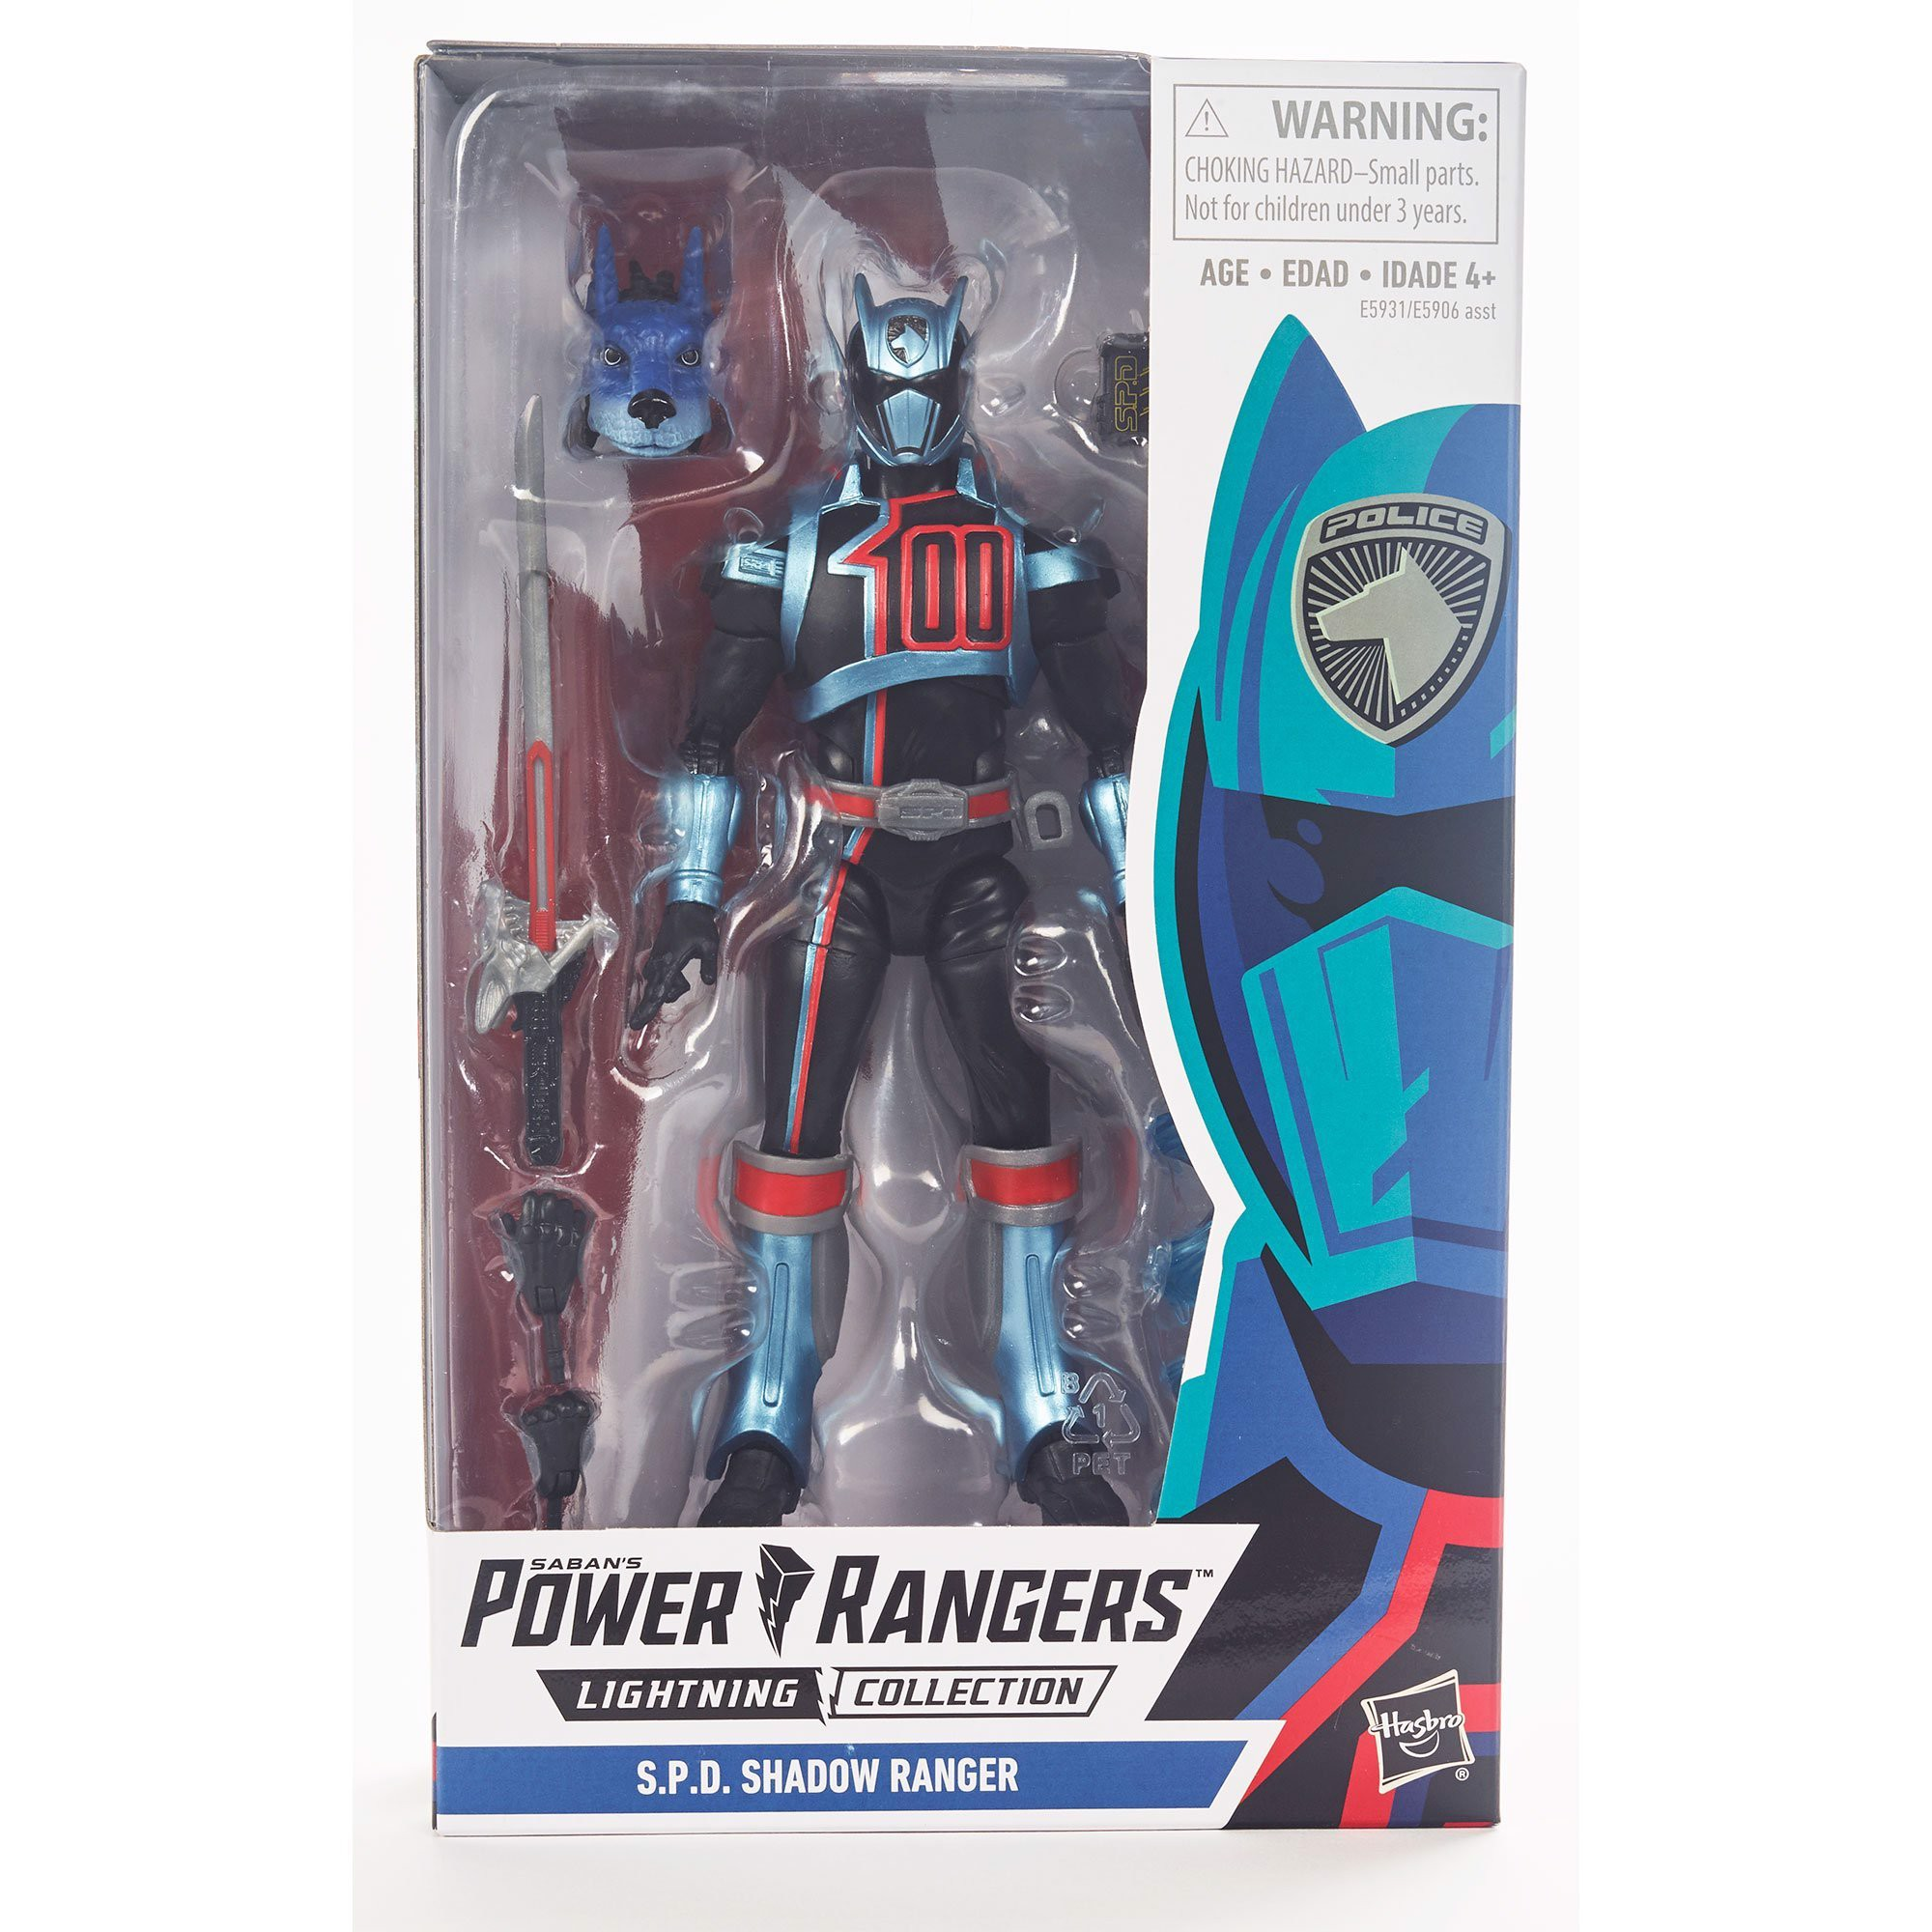 [CÓ SẴN] Hasbro Power Rangers Lightning Collection 6 Inch S.P.D. Shadow Ranger Collectible Action Figure